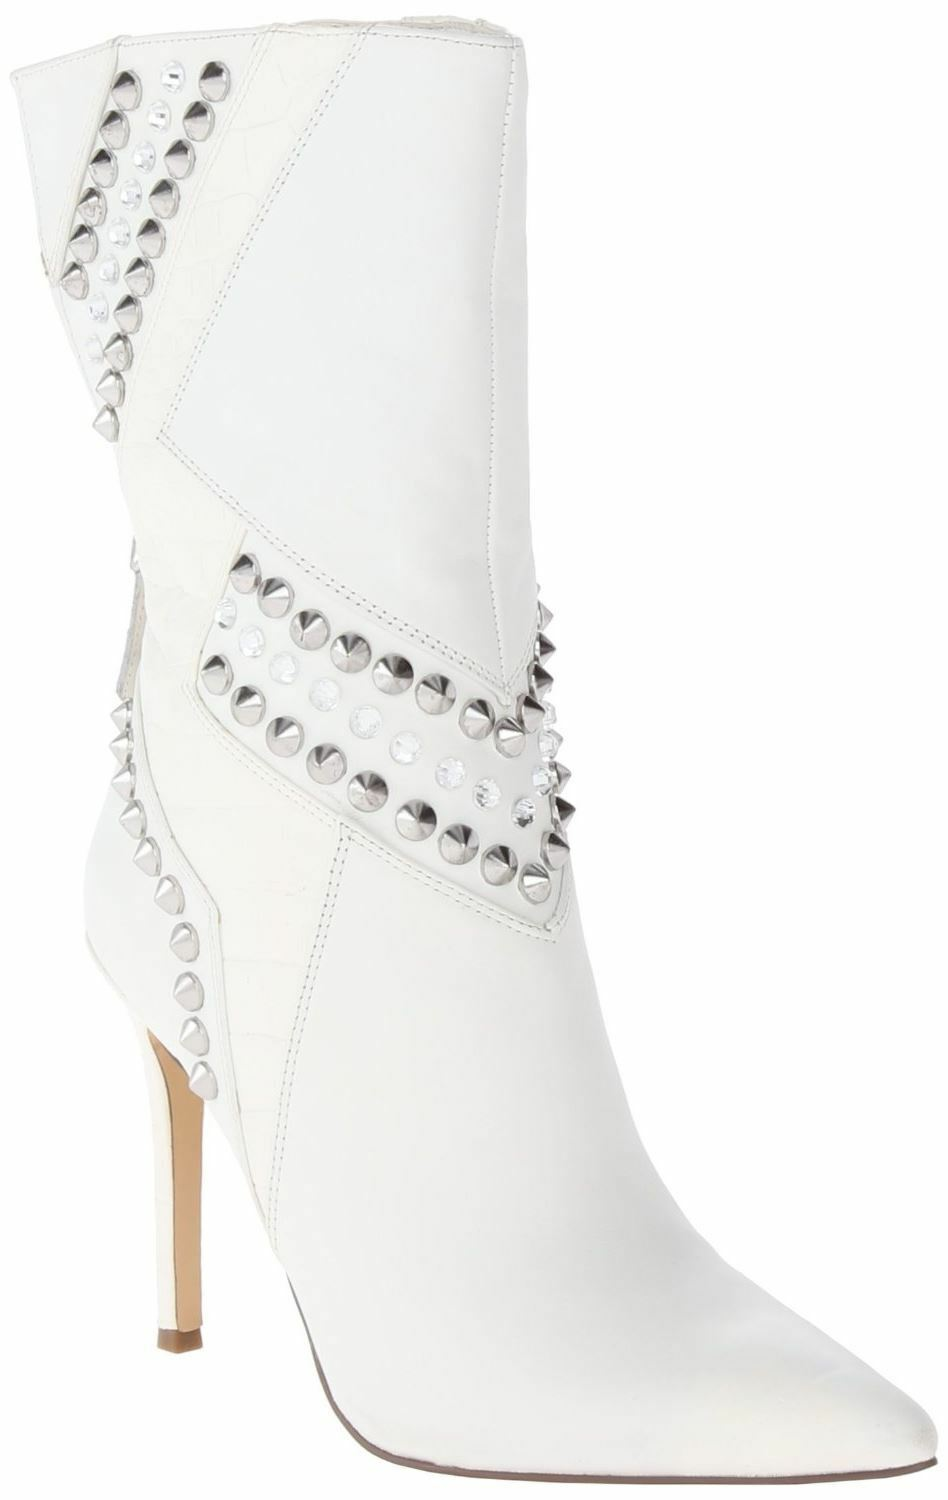 GUESS NYX Women's Dress Booties Save over